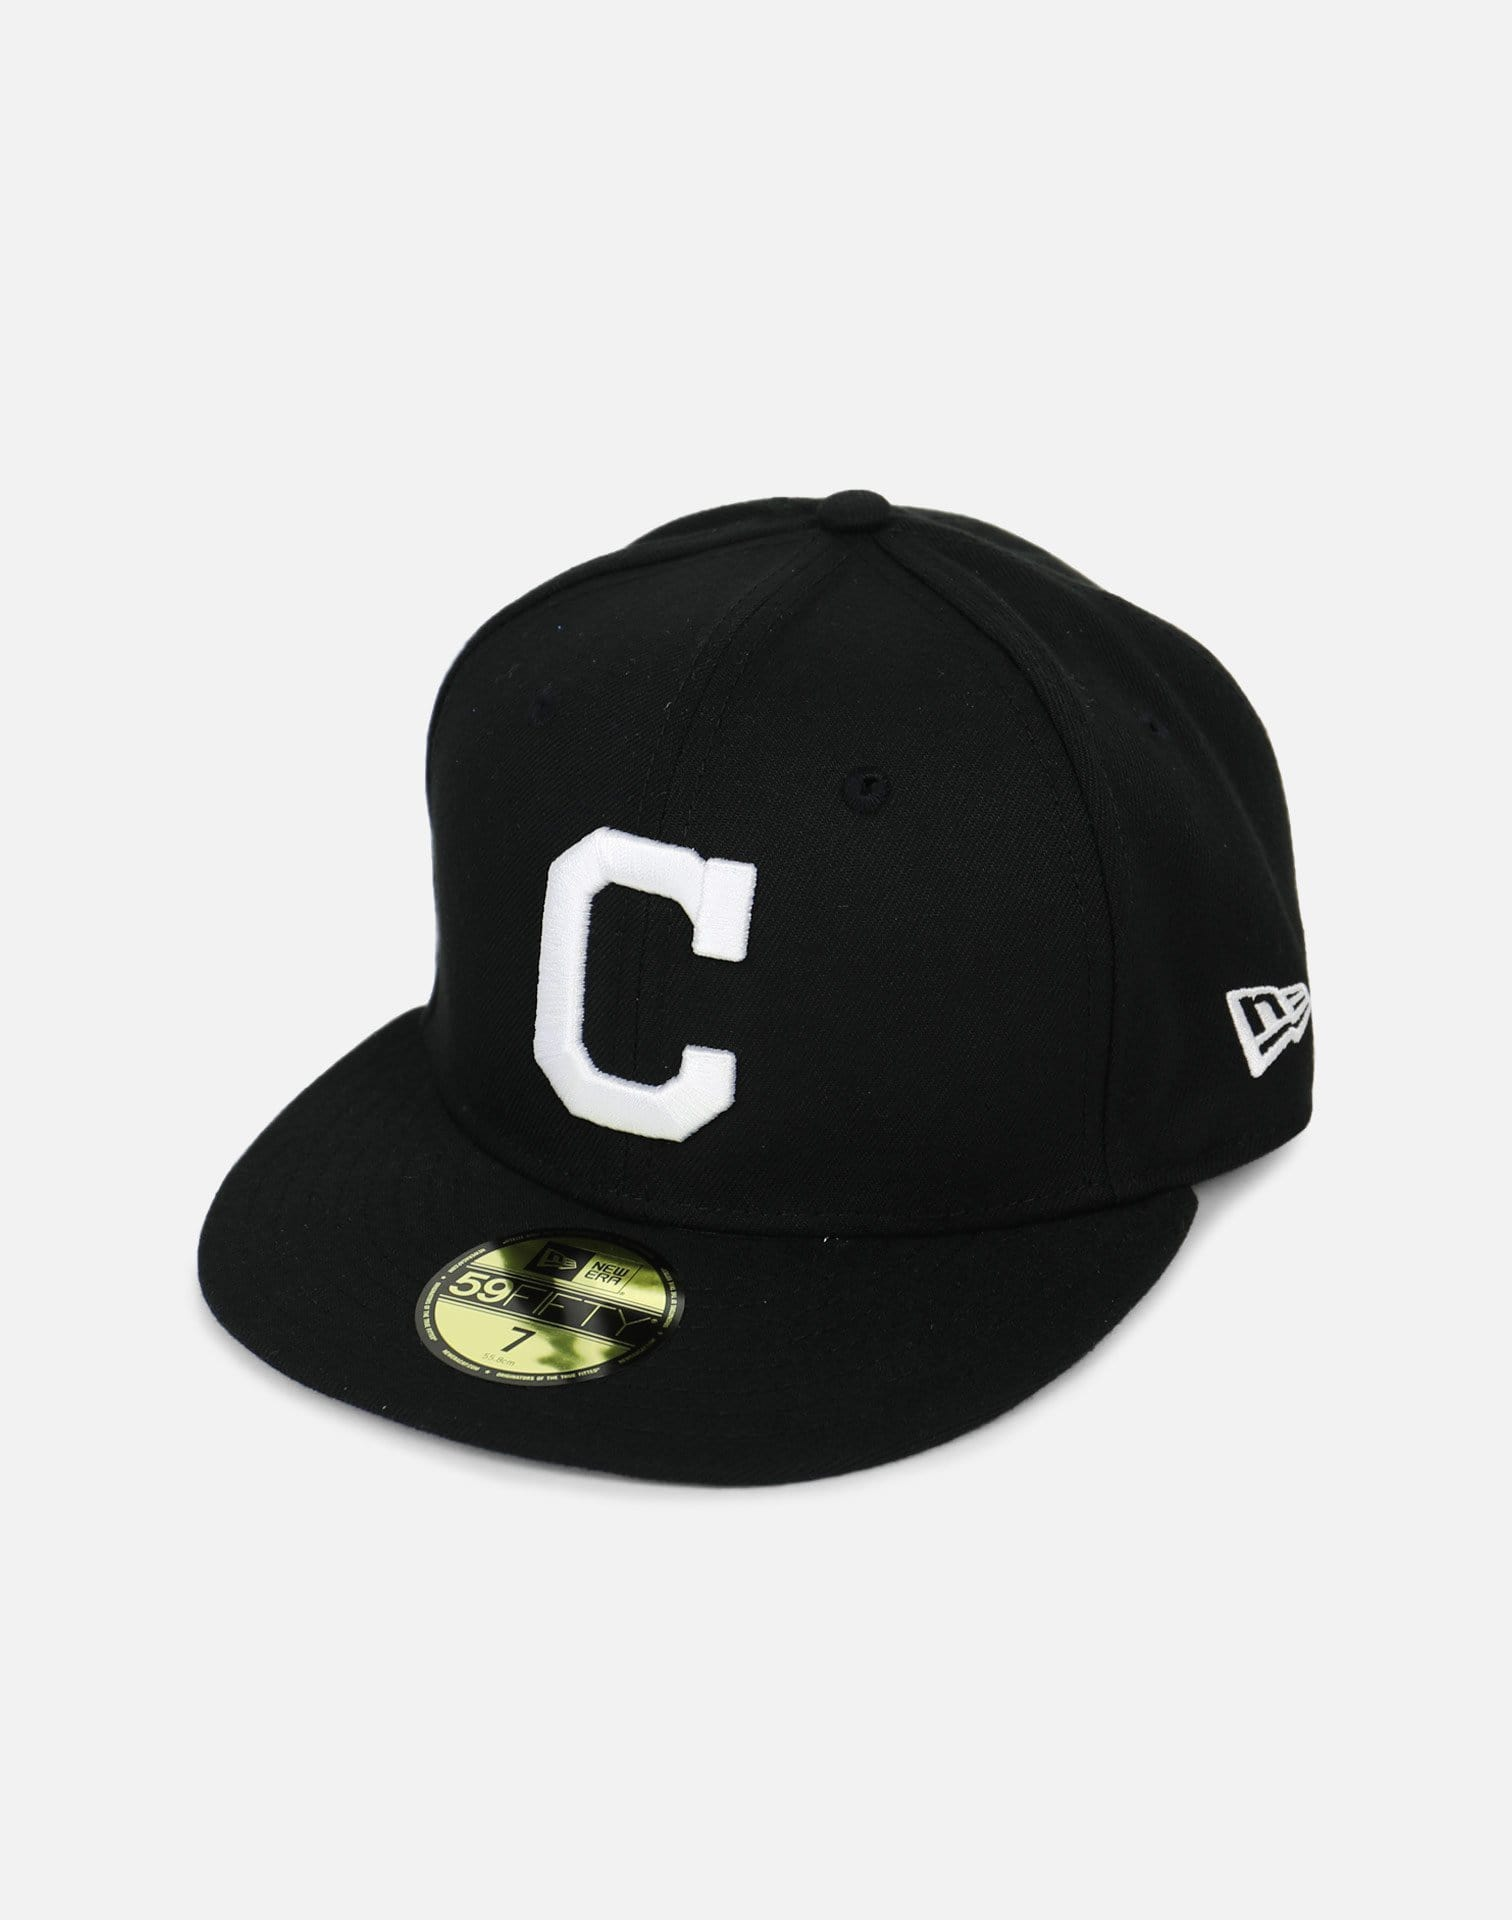 New Era Cleveland Indians Black Fitted Hat (Black)